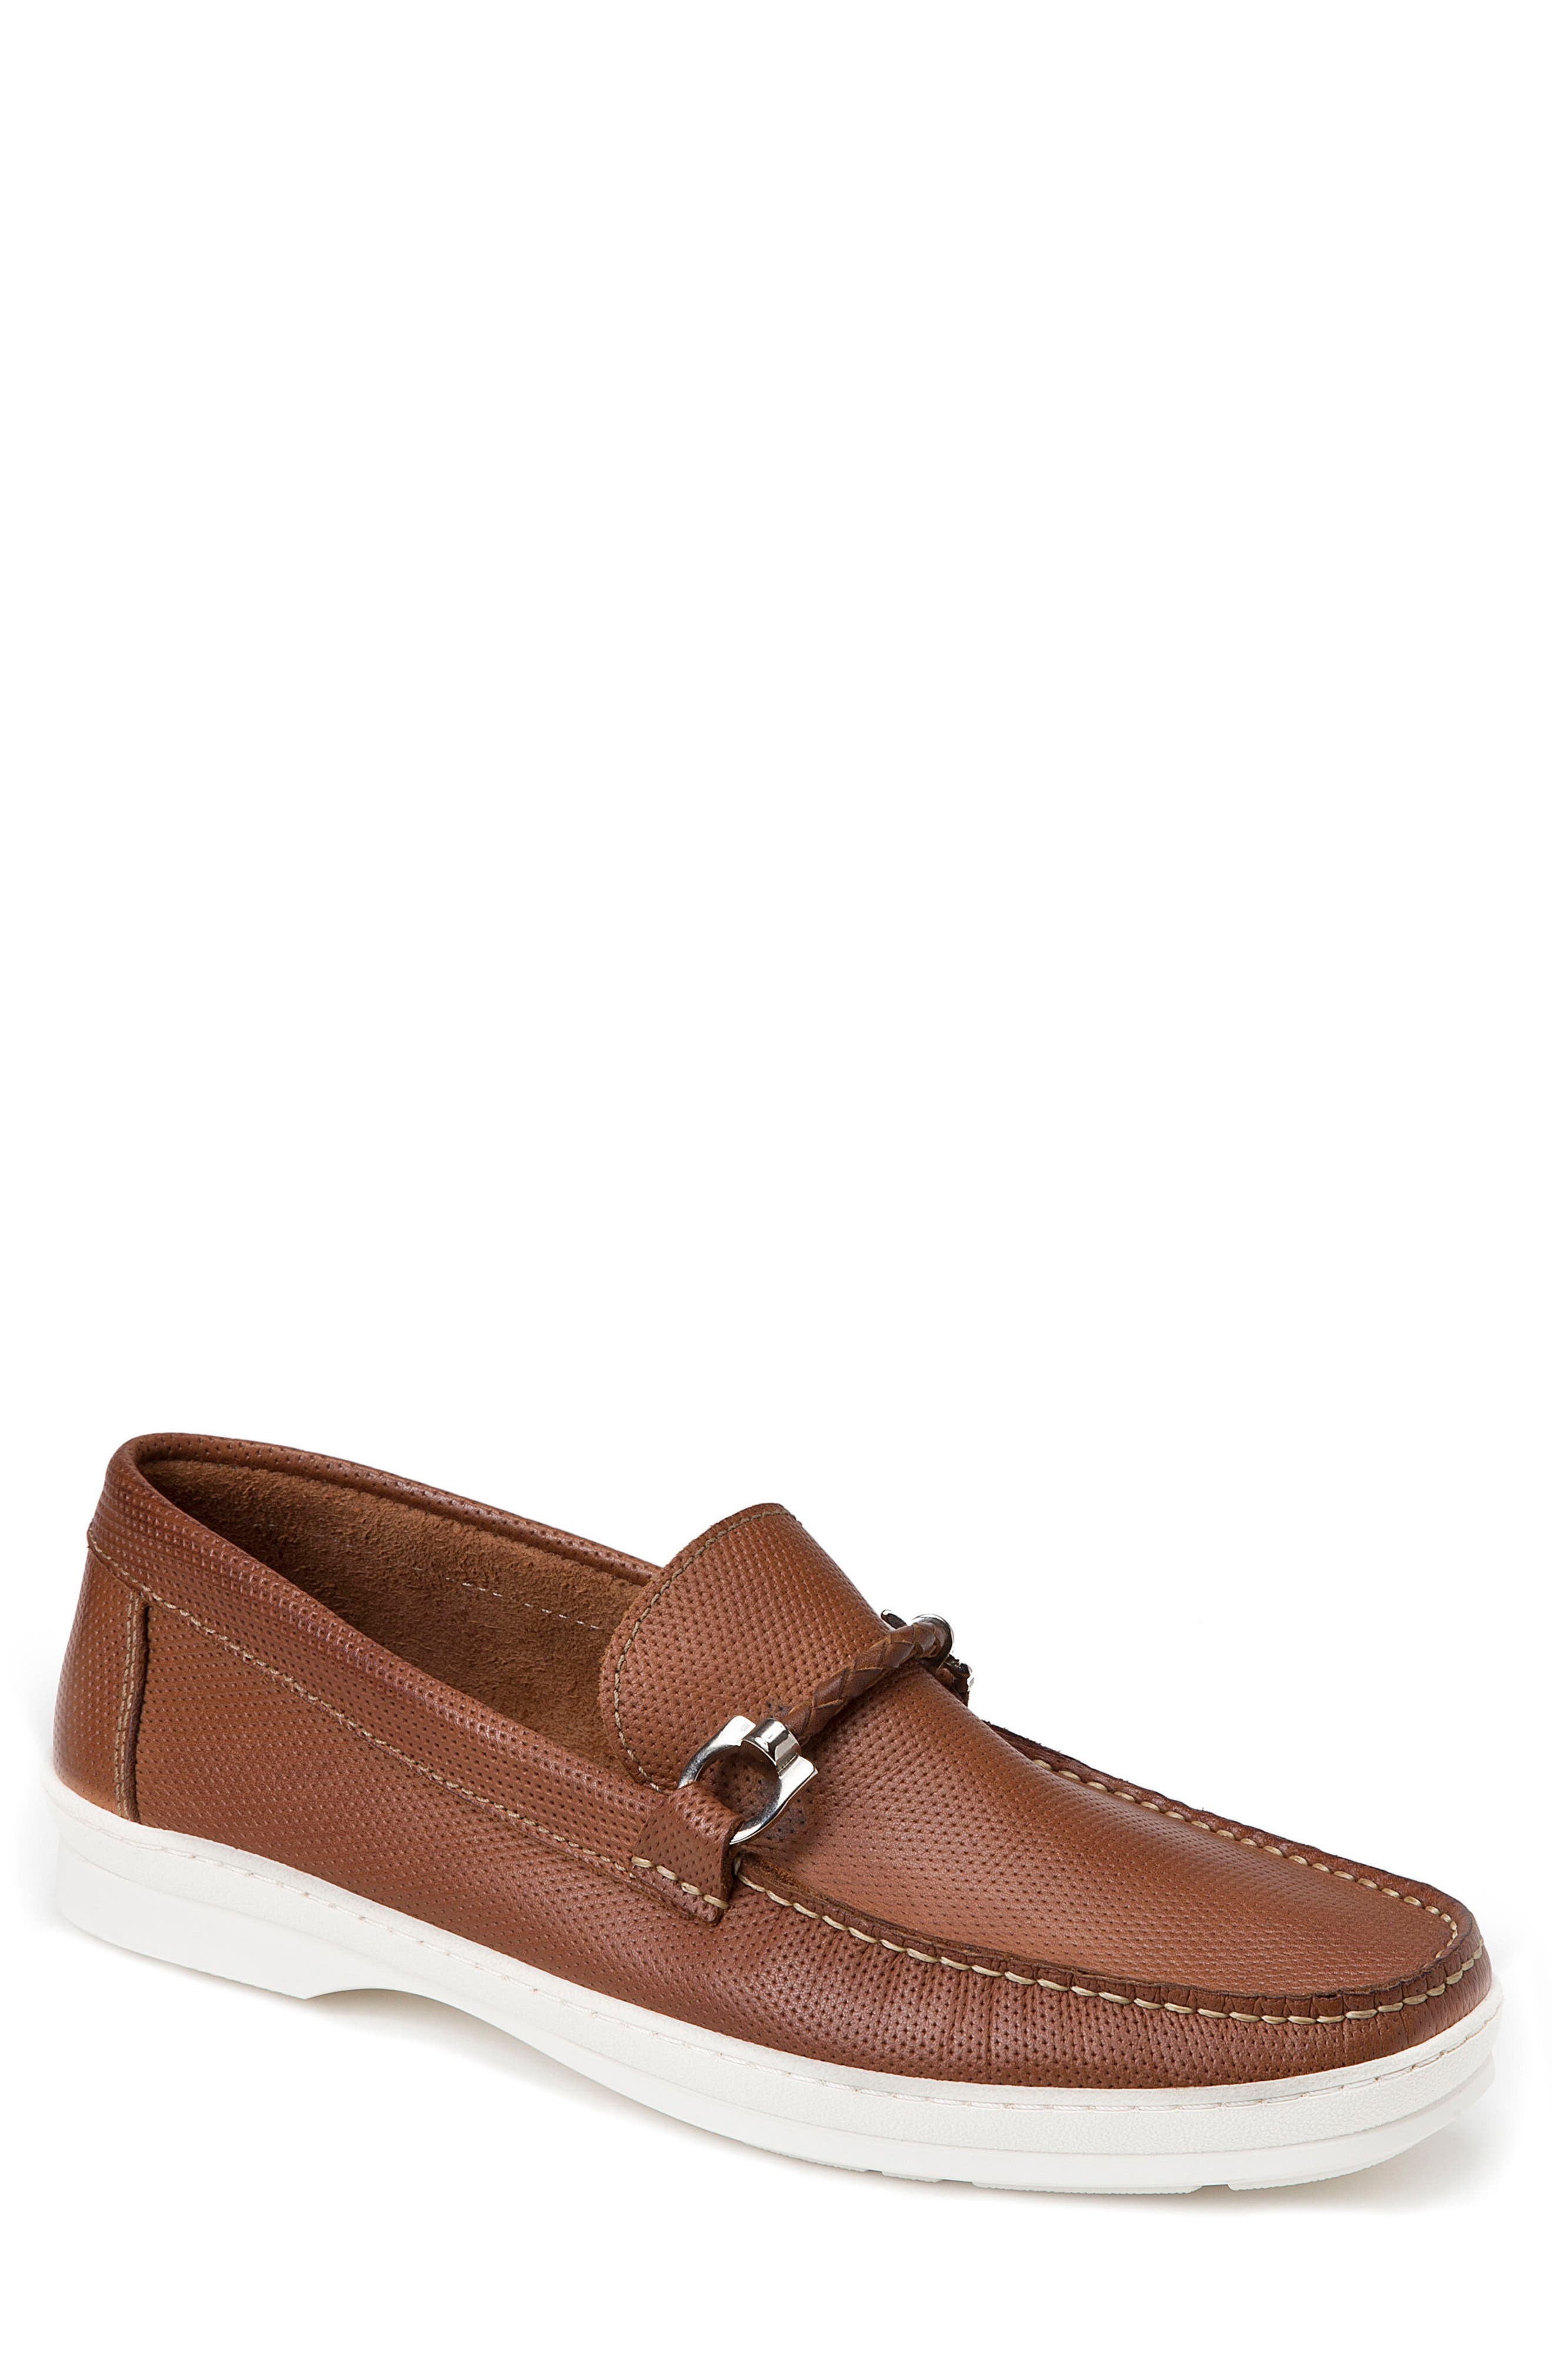 Sandro Moscoloni Benito Perforated Moc Toe Loafer (Men)